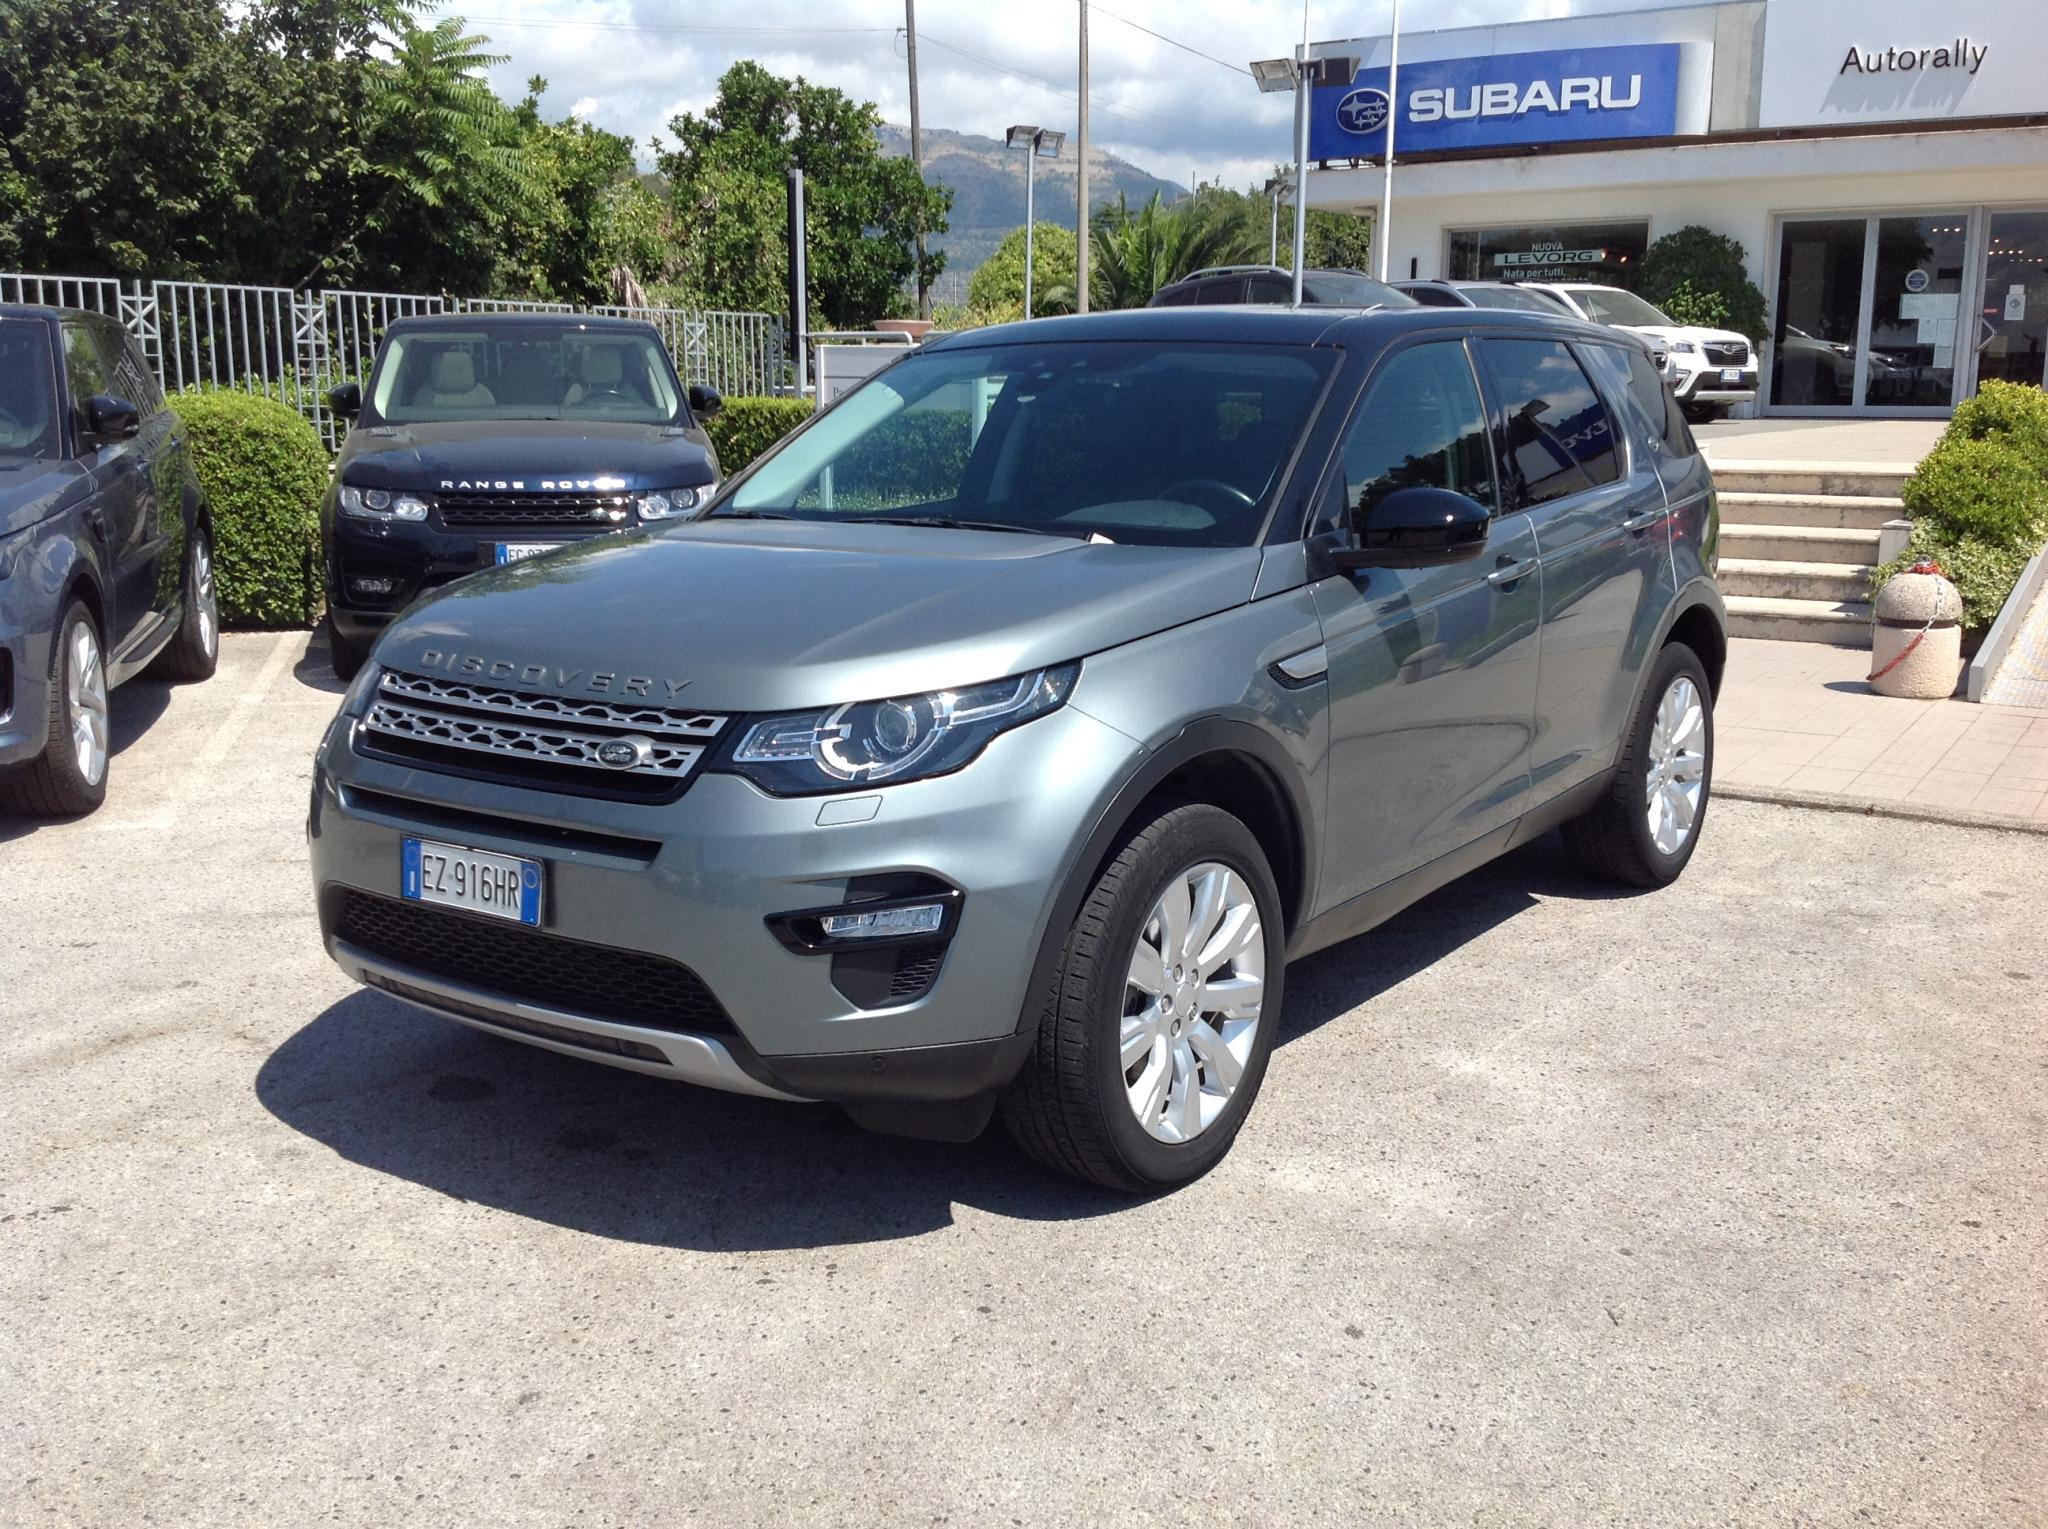 Land Rover Discovery Sport 2.2 TD4 HSE Automatica